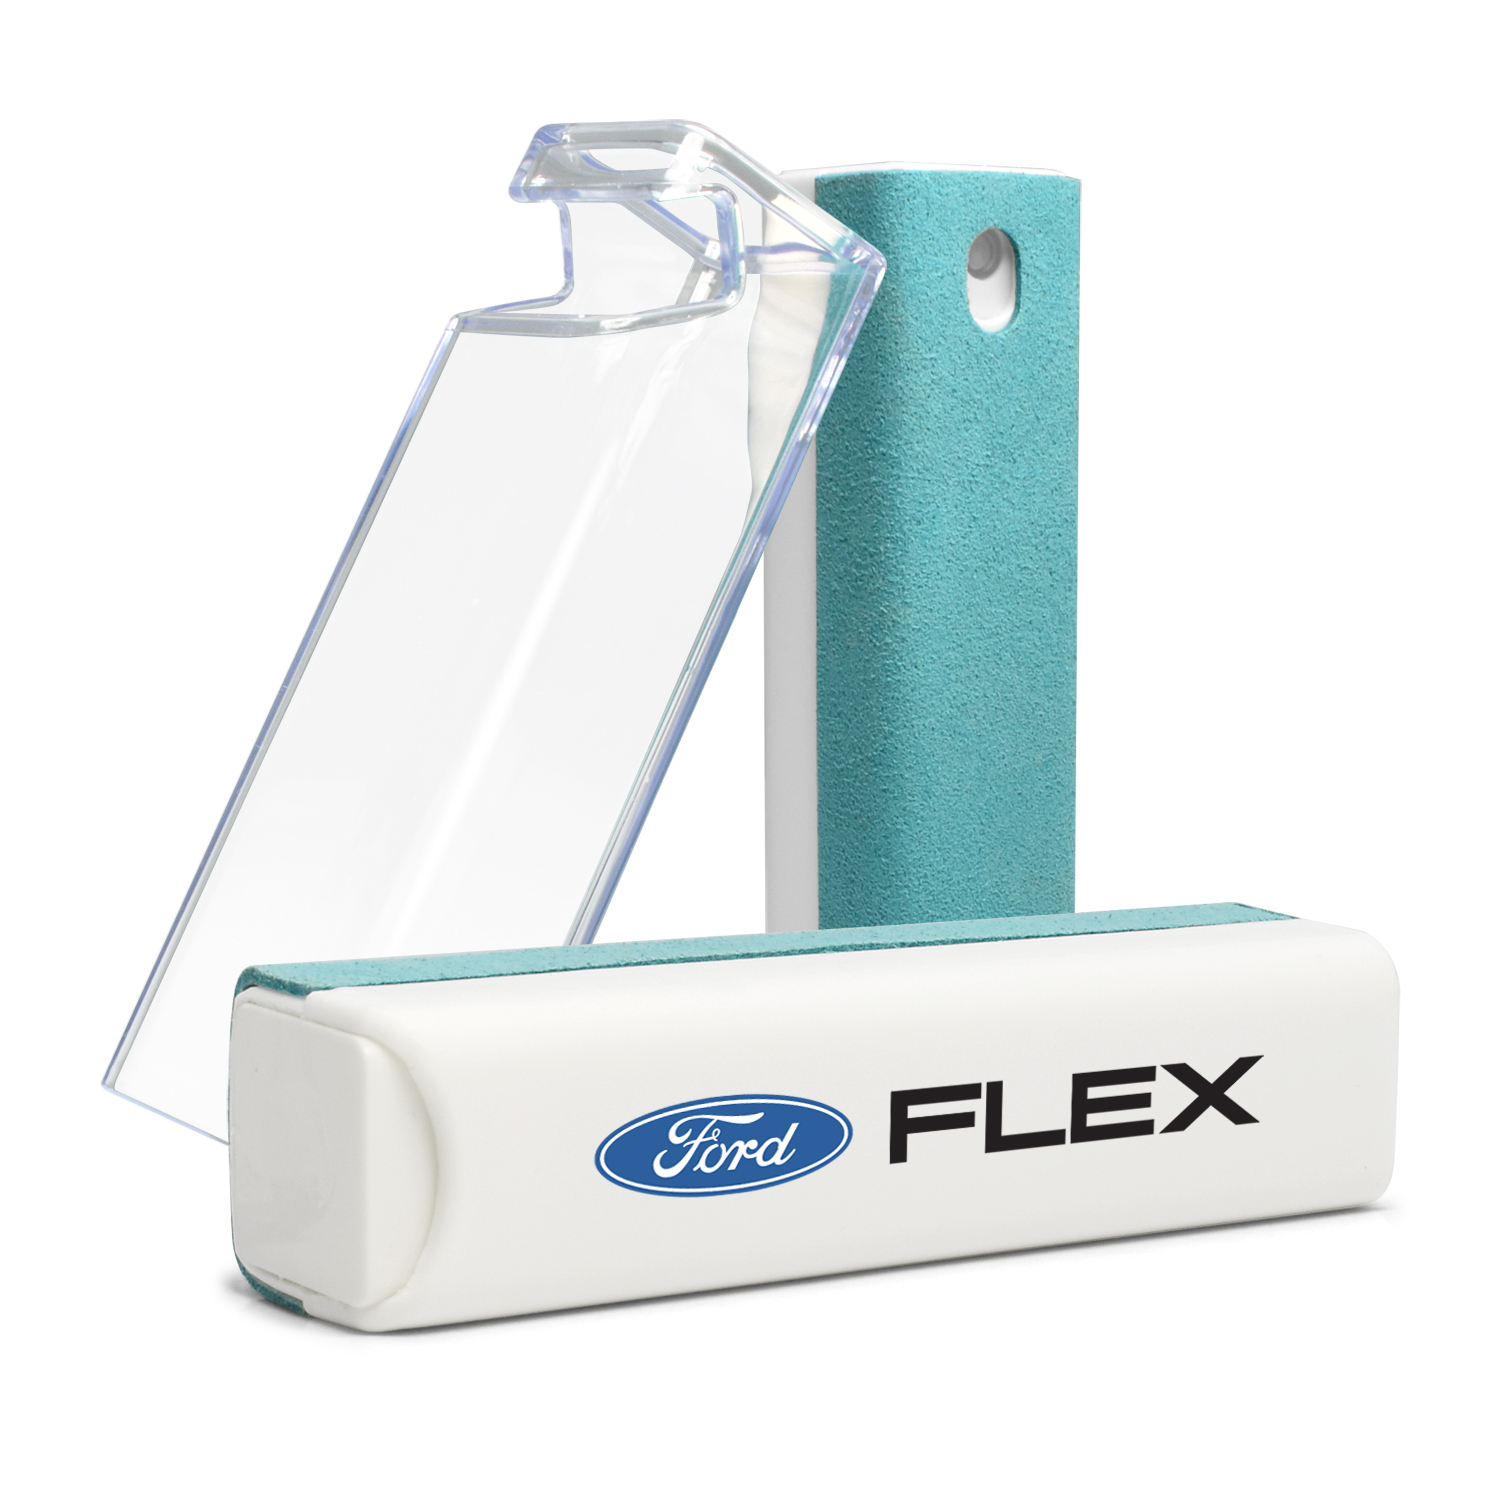 Ford Flex Blue Microfiber Screen Cleaner for Car Navigation, Cell Phone